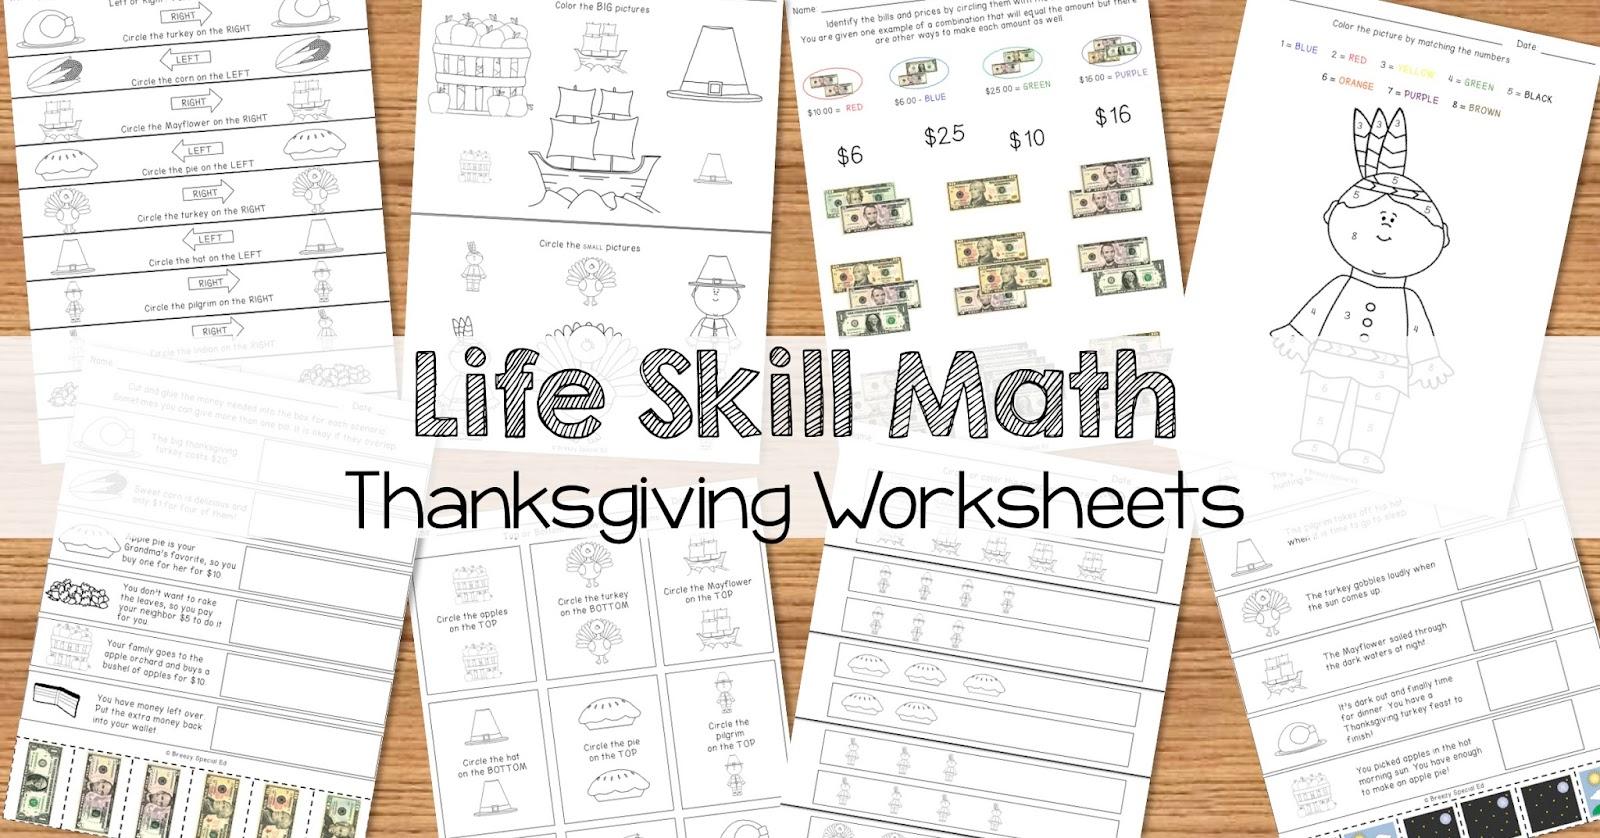 Worksheet Life Skills Math Worksheets breezy special ed math life skill worksheets thanksgiving themed i was busy this summer creating daily journals to go with our themes and now am packs along with